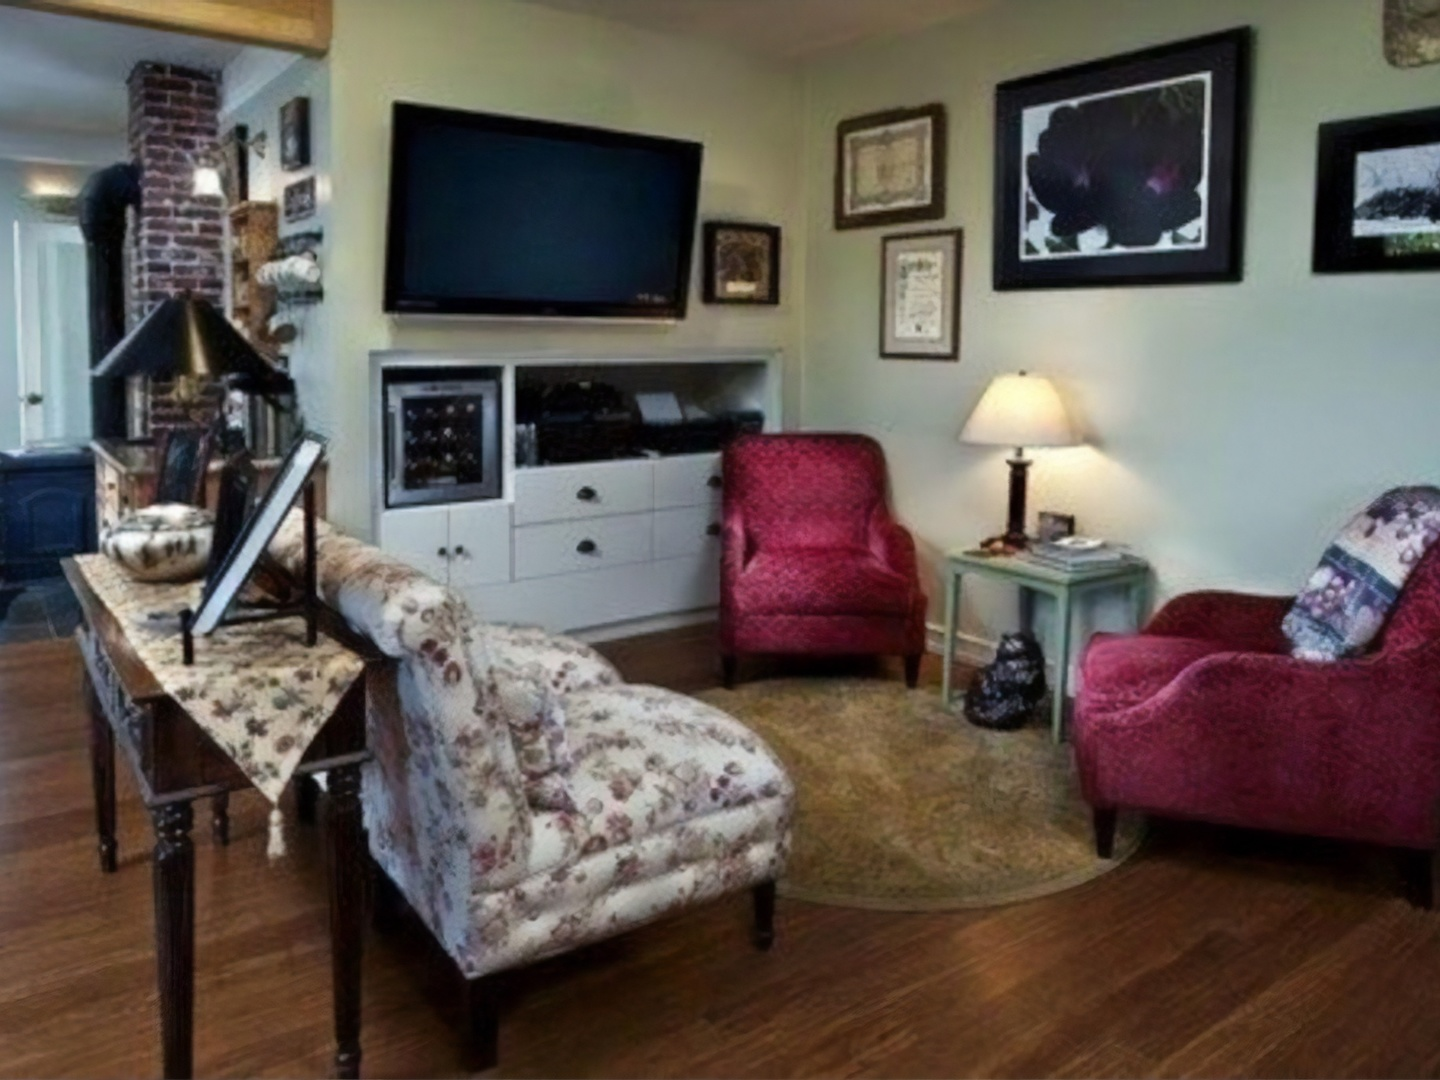 A living room filled with furniture and a flat screen tv at Old Parkdale Inn.